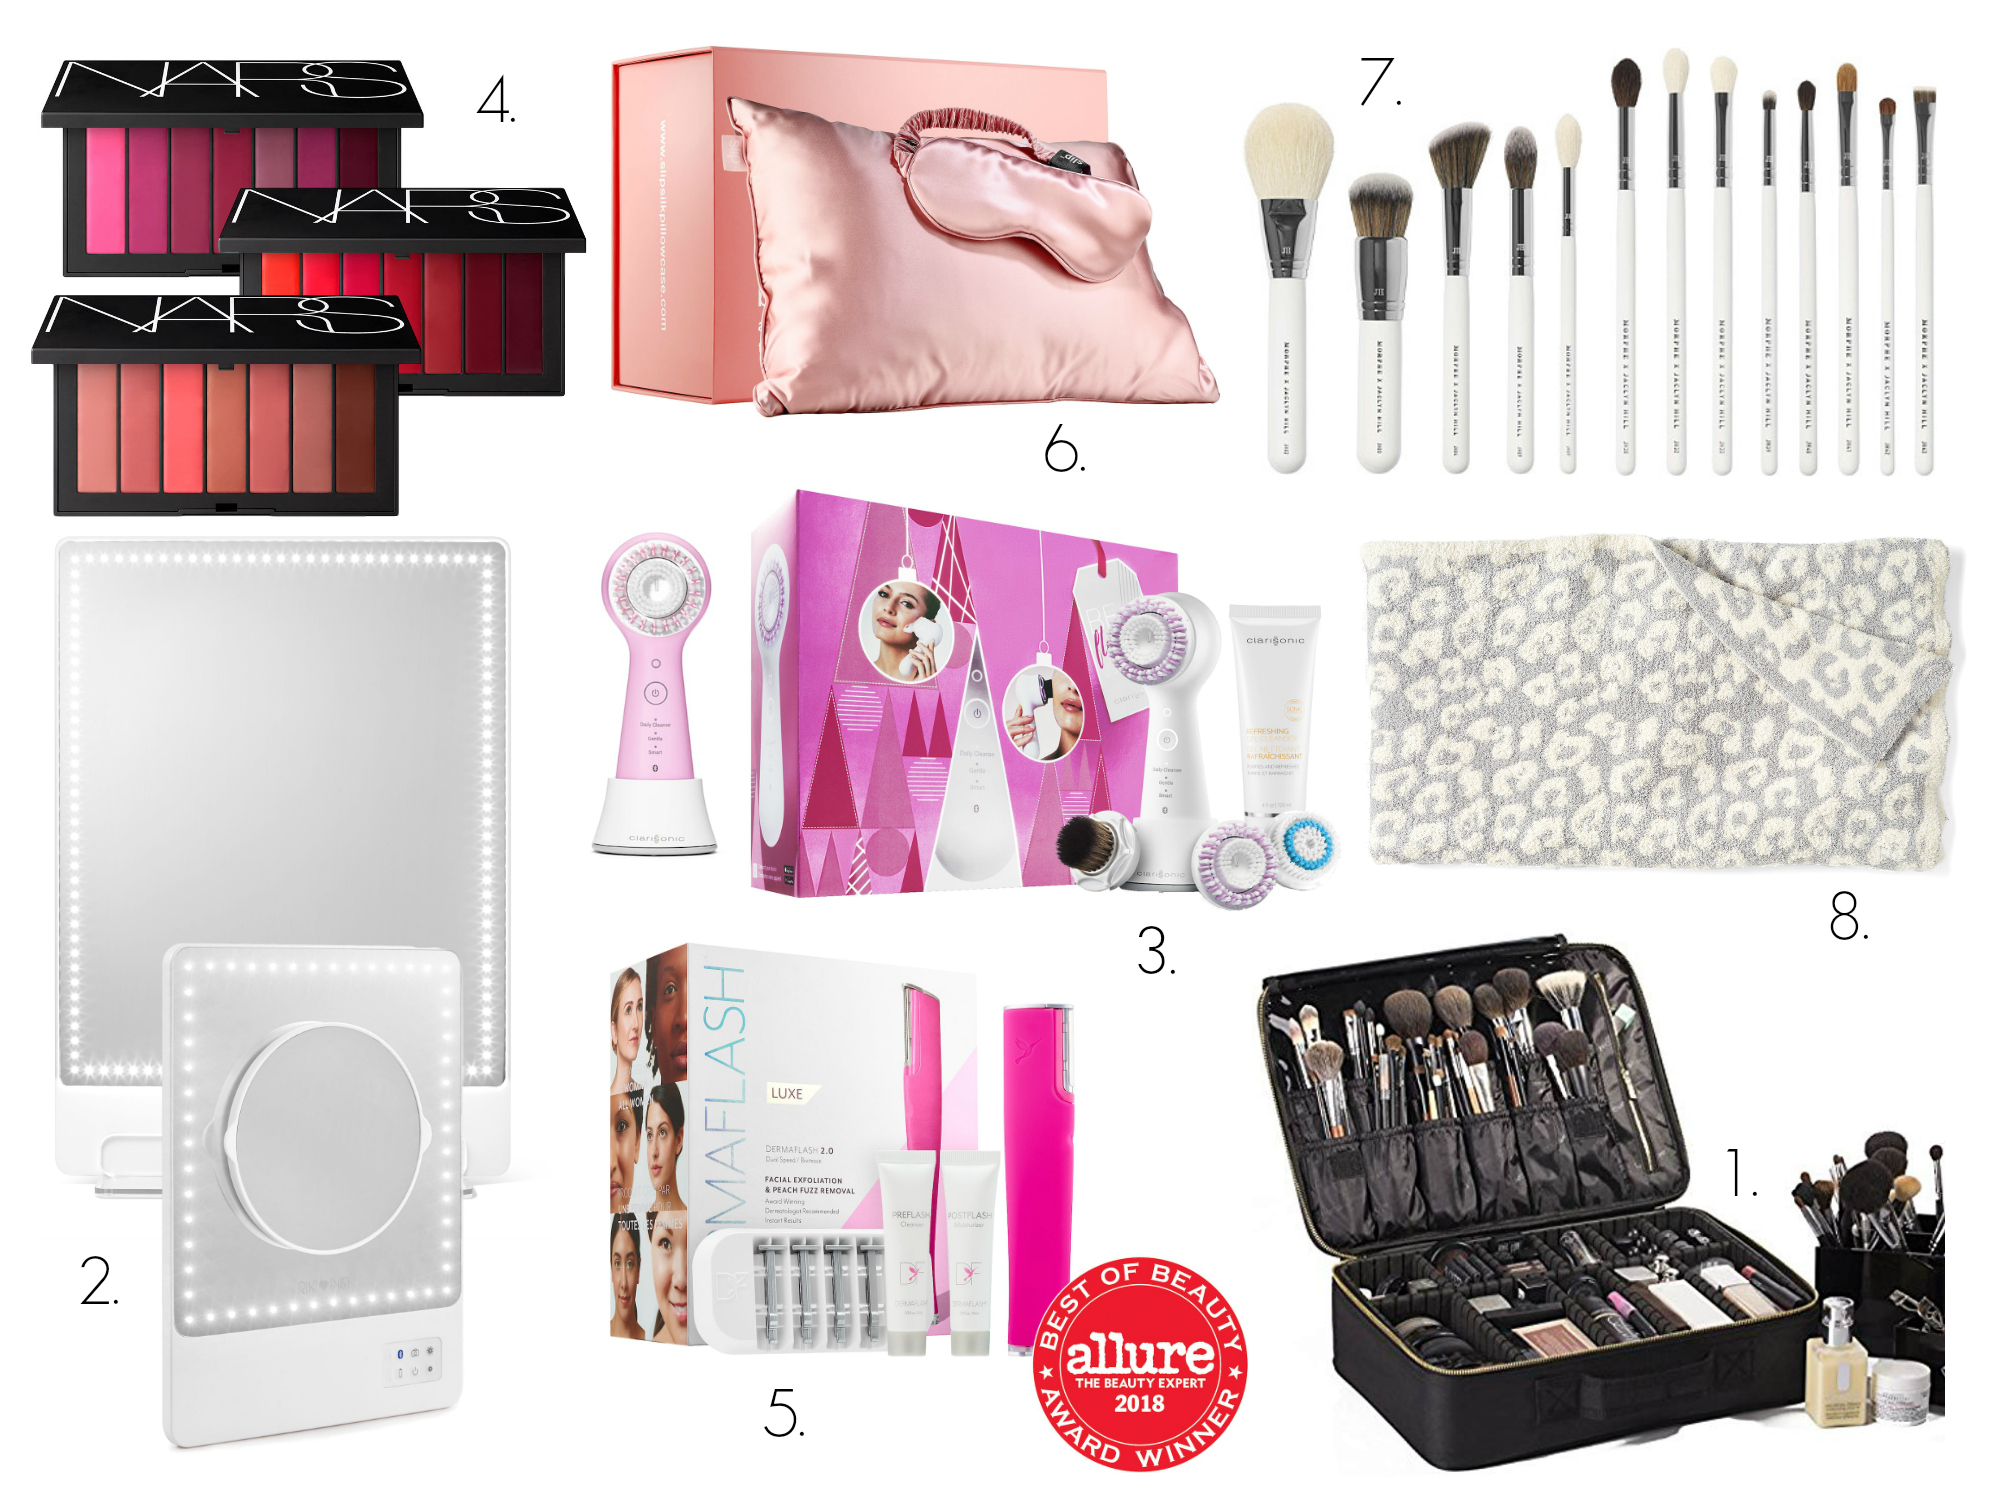 GIFTS FOR YOUR BEAUTY GURU BFF